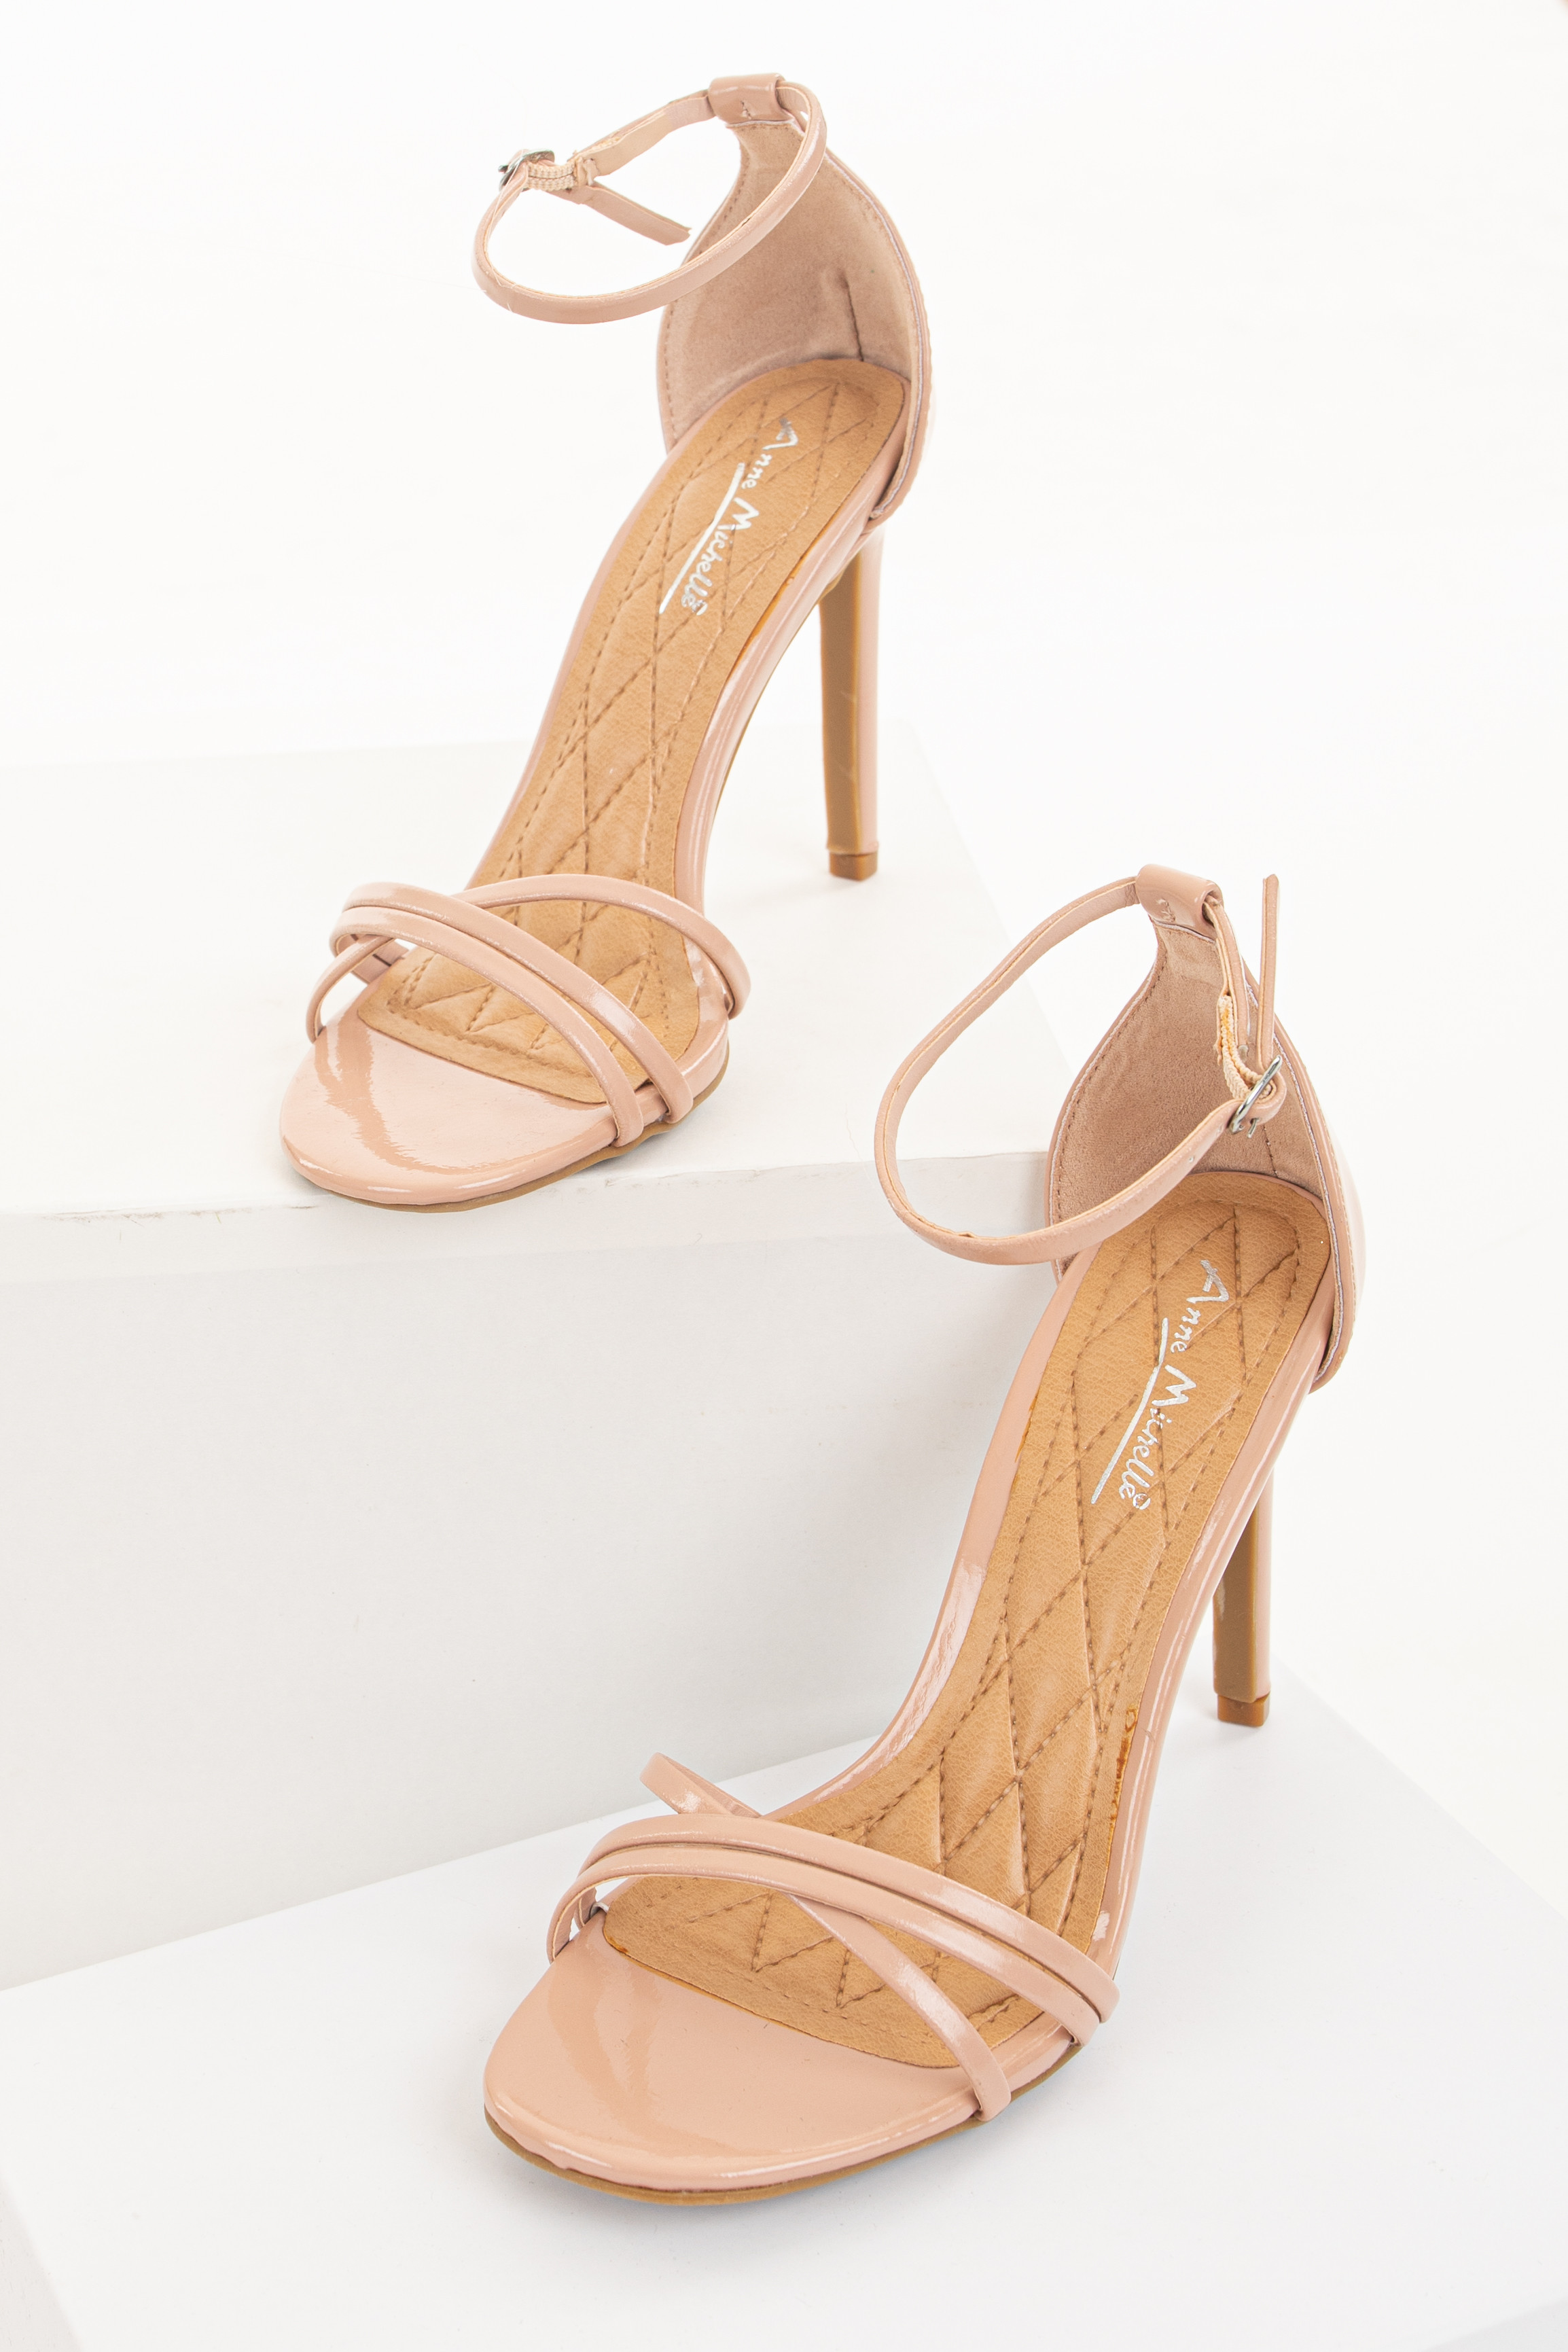 Pale Pink Stiletto Heels with Strap Details and Open Toe